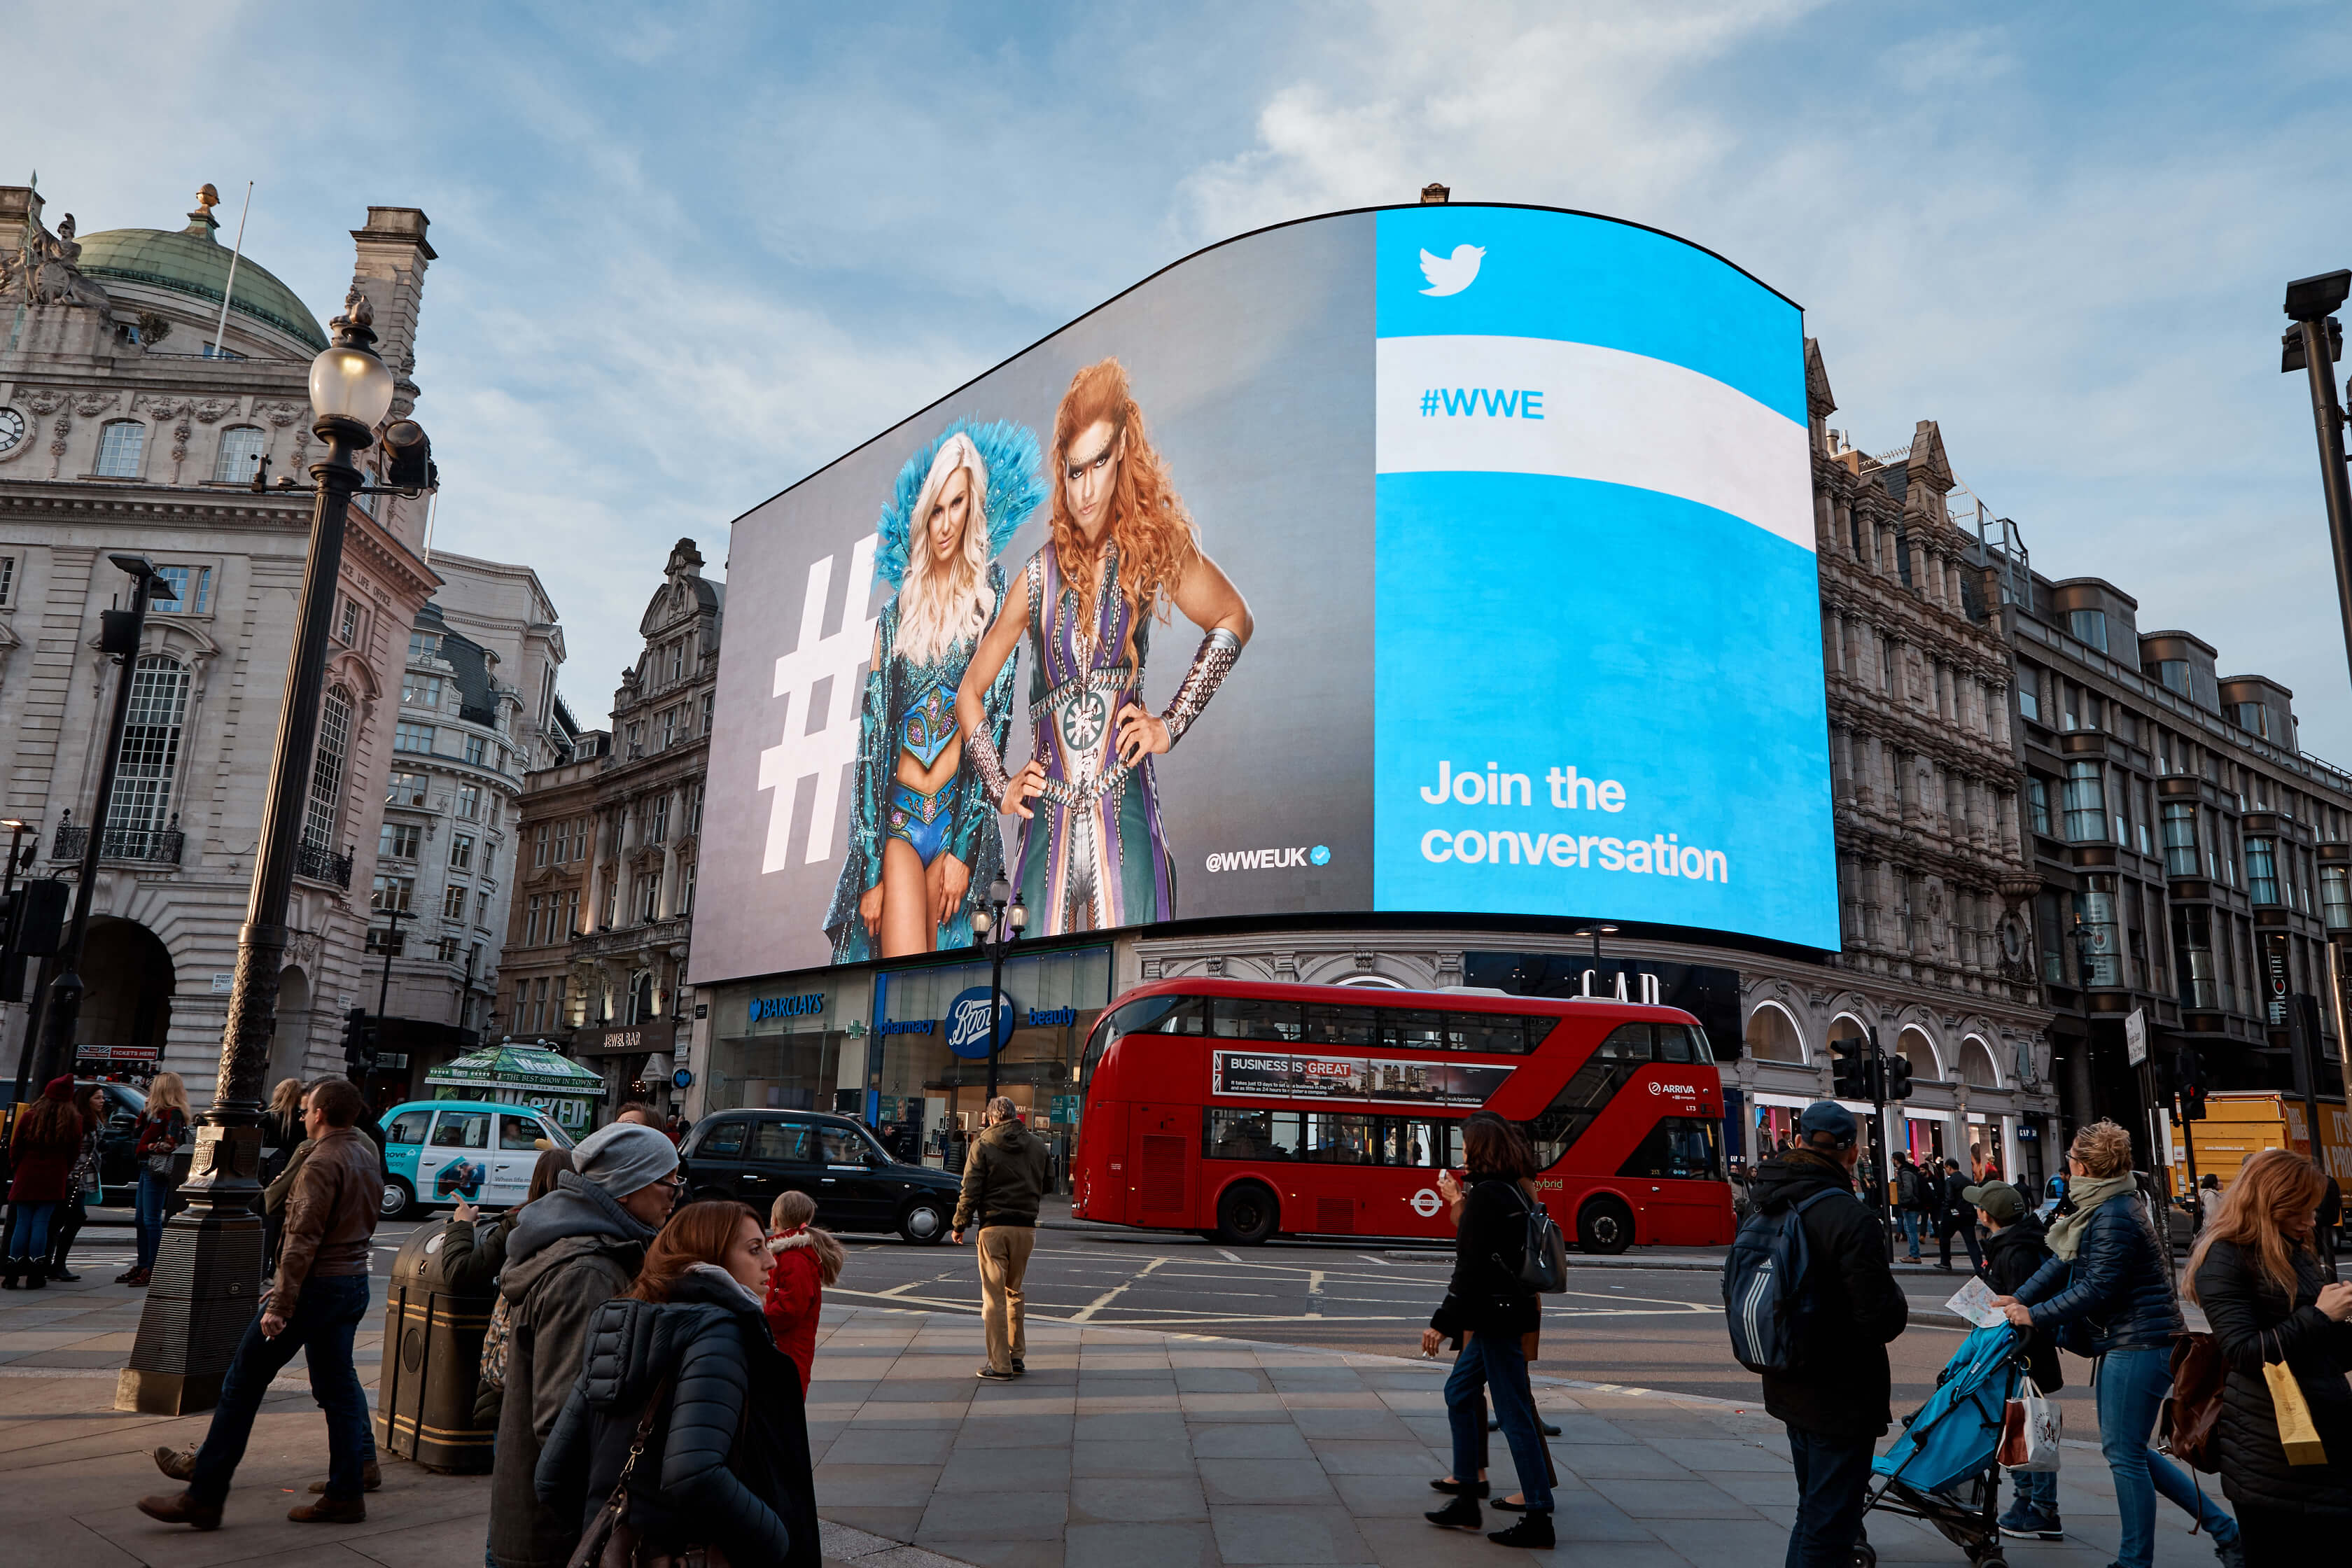 20181029_Twitter_Piccadilly_Lights_1553